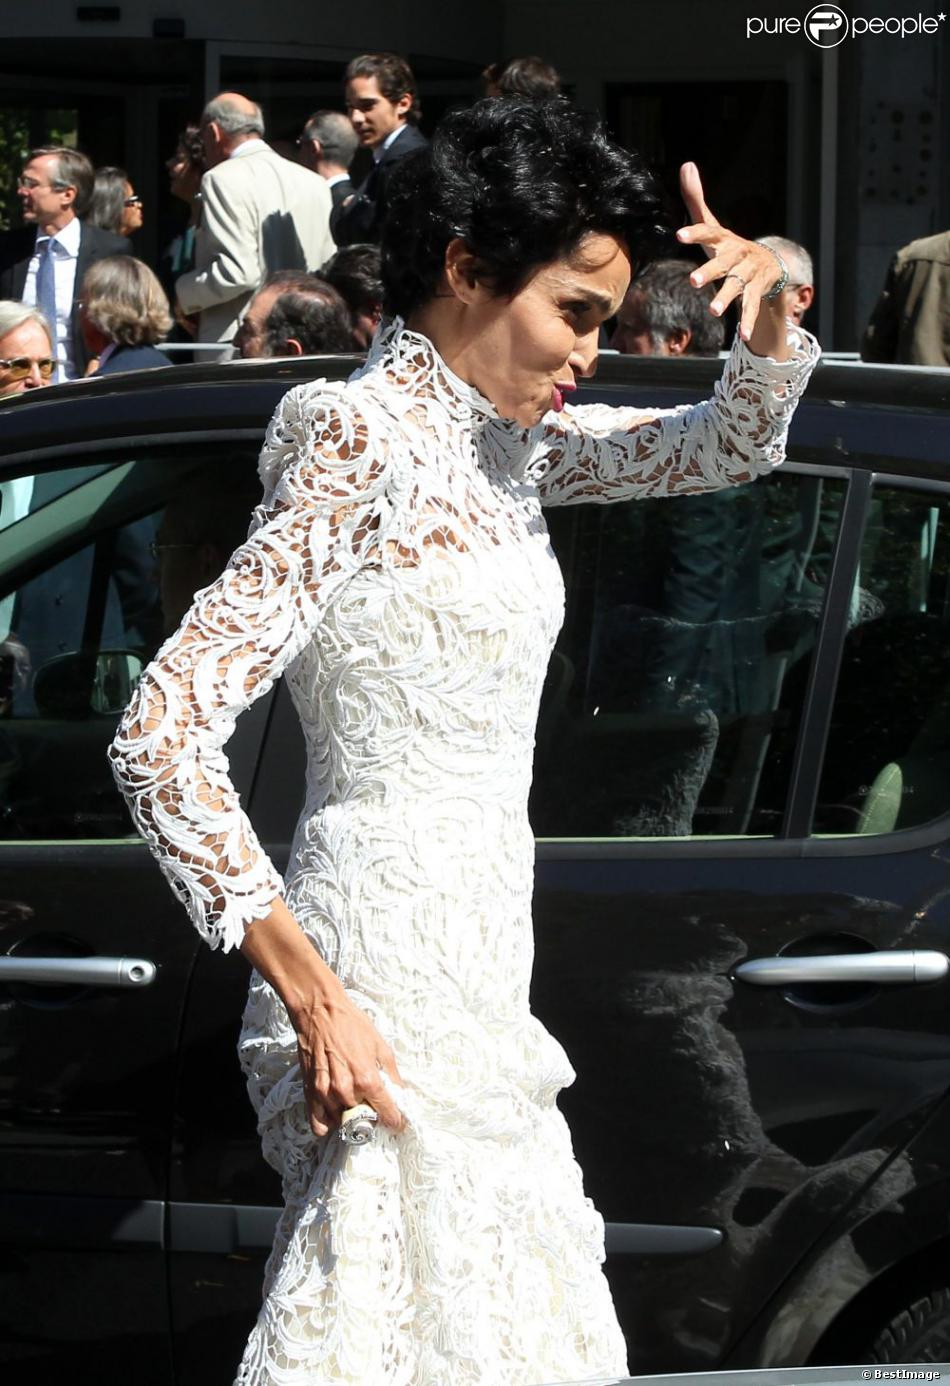 farida khelfa en robe de mariage jean paul gaultier devant la mairie du 17 arrondissement de. Black Bedroom Furniture Sets. Home Design Ideas